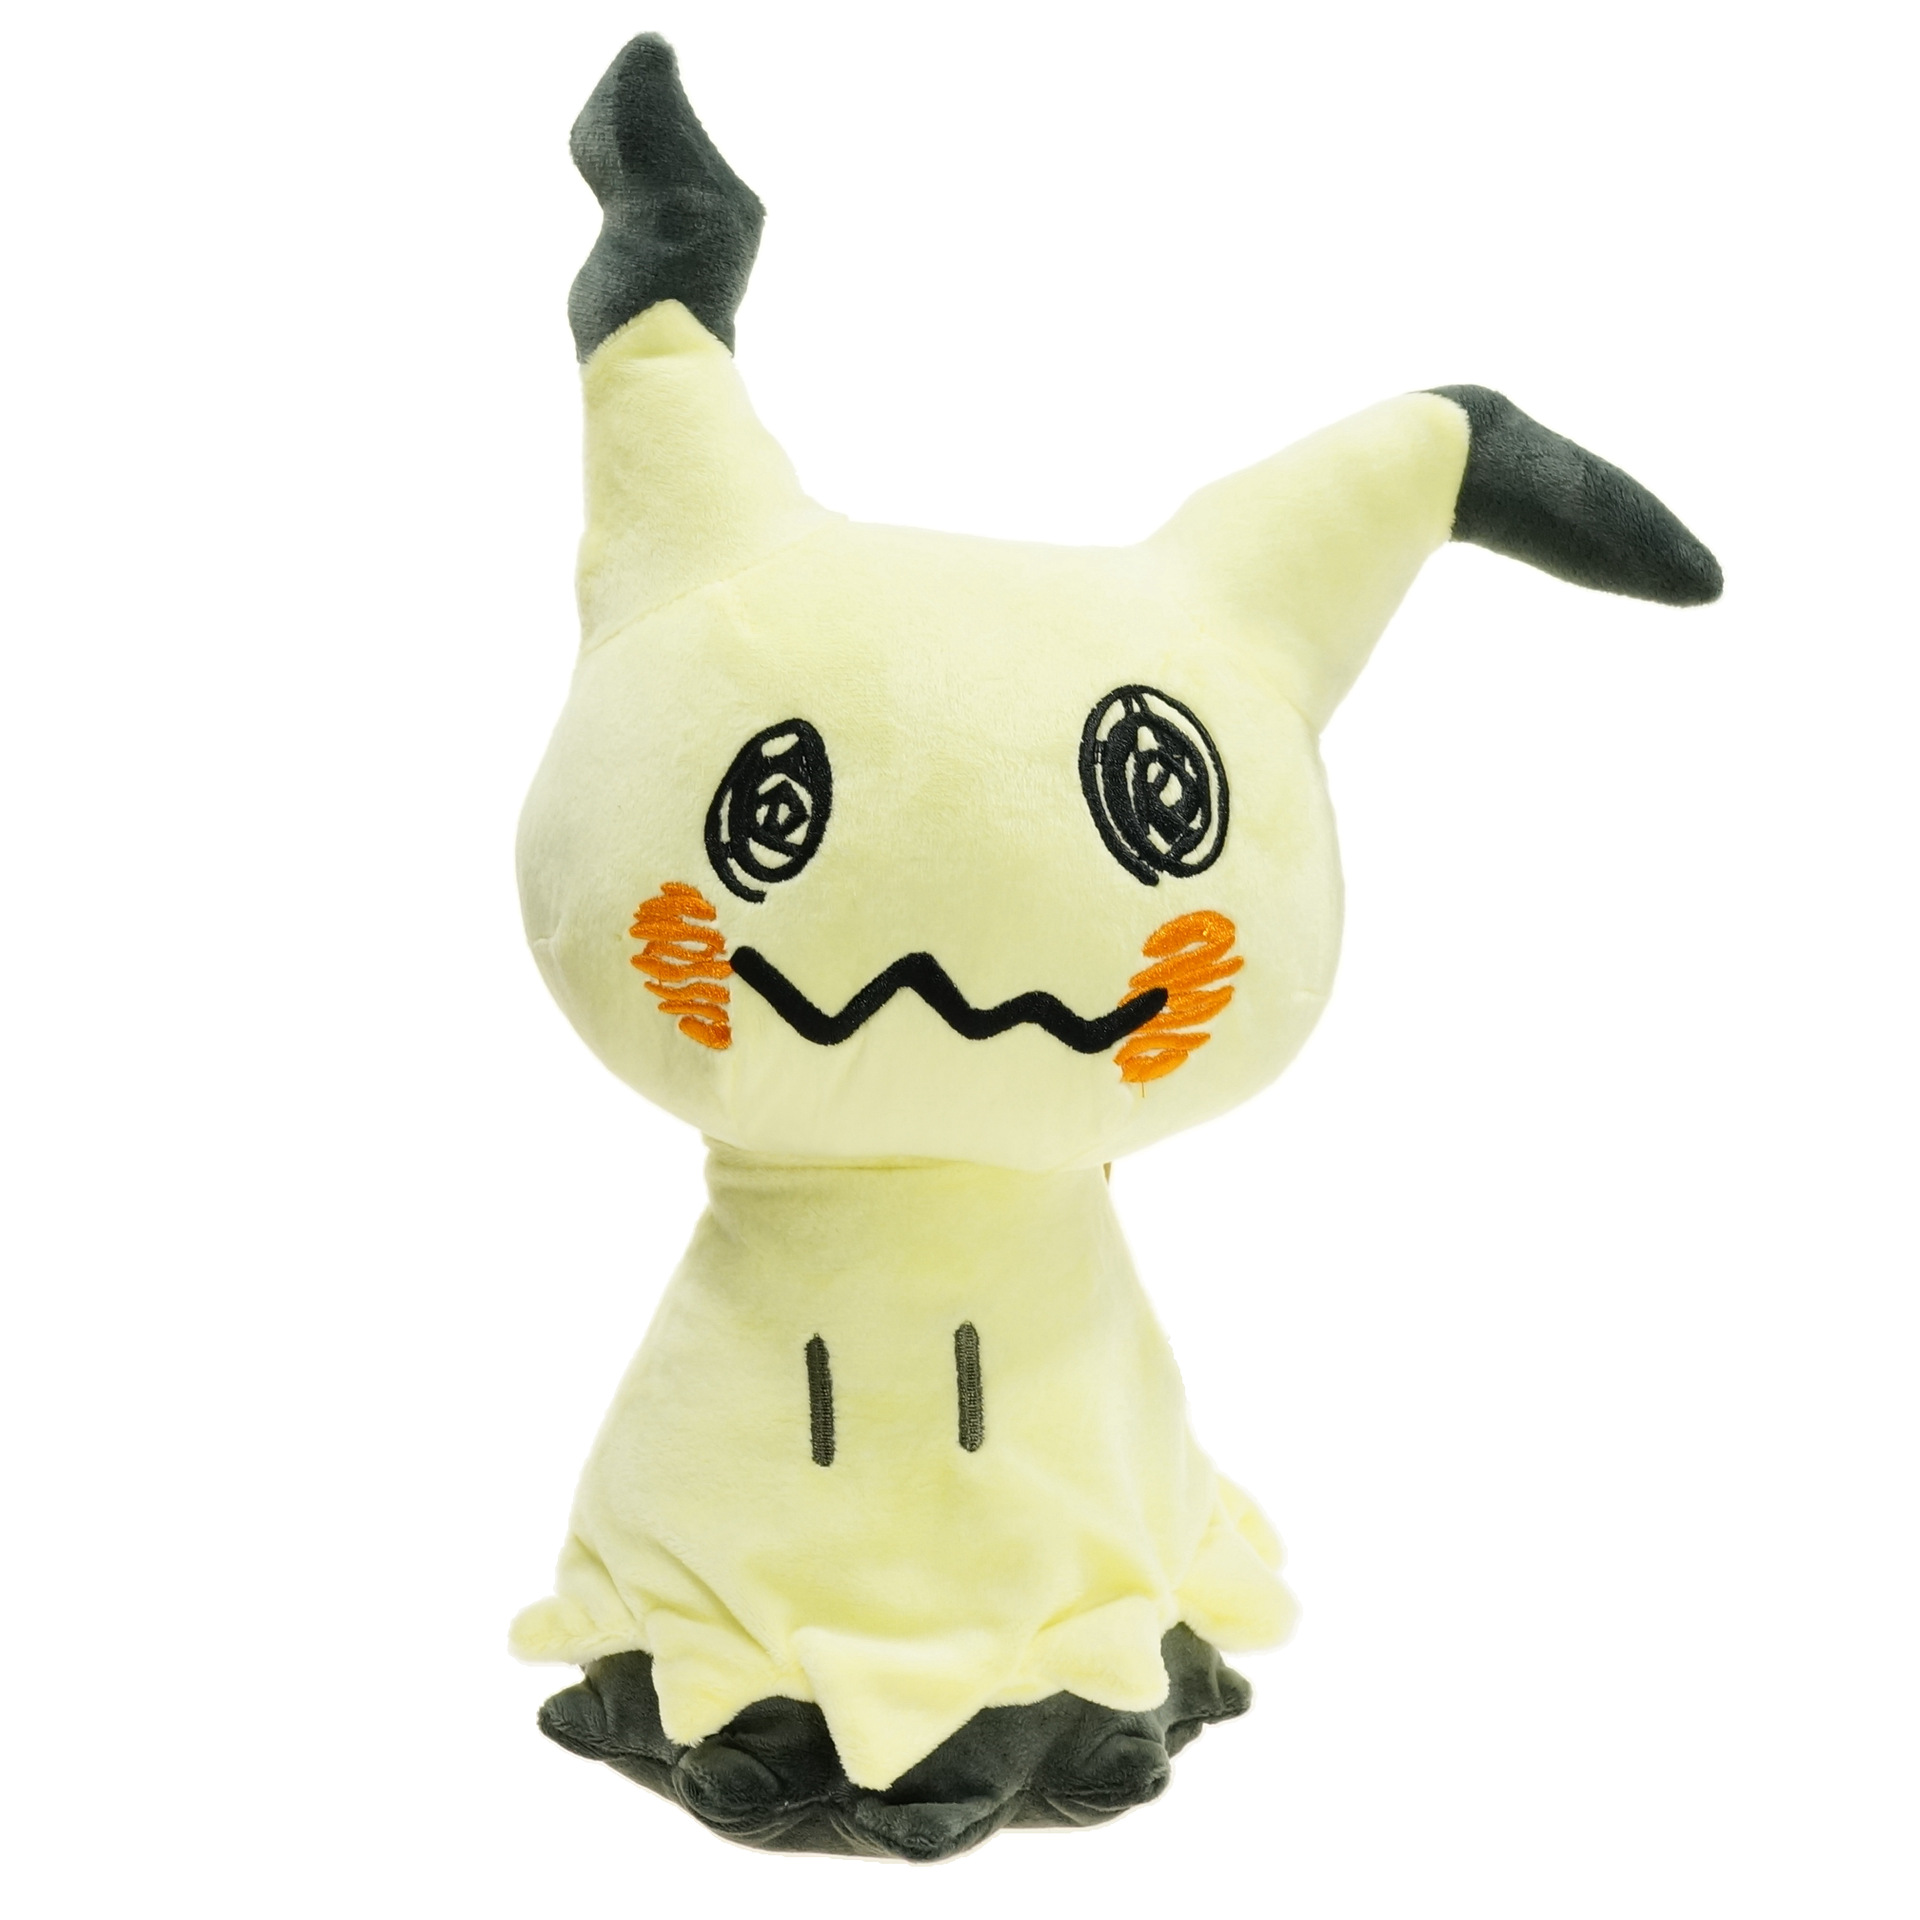 20cm/13cm  Pokedoll Mimikyu Plush Dolls Toys Soft Childrens Gift Stuffed Dolls Toys